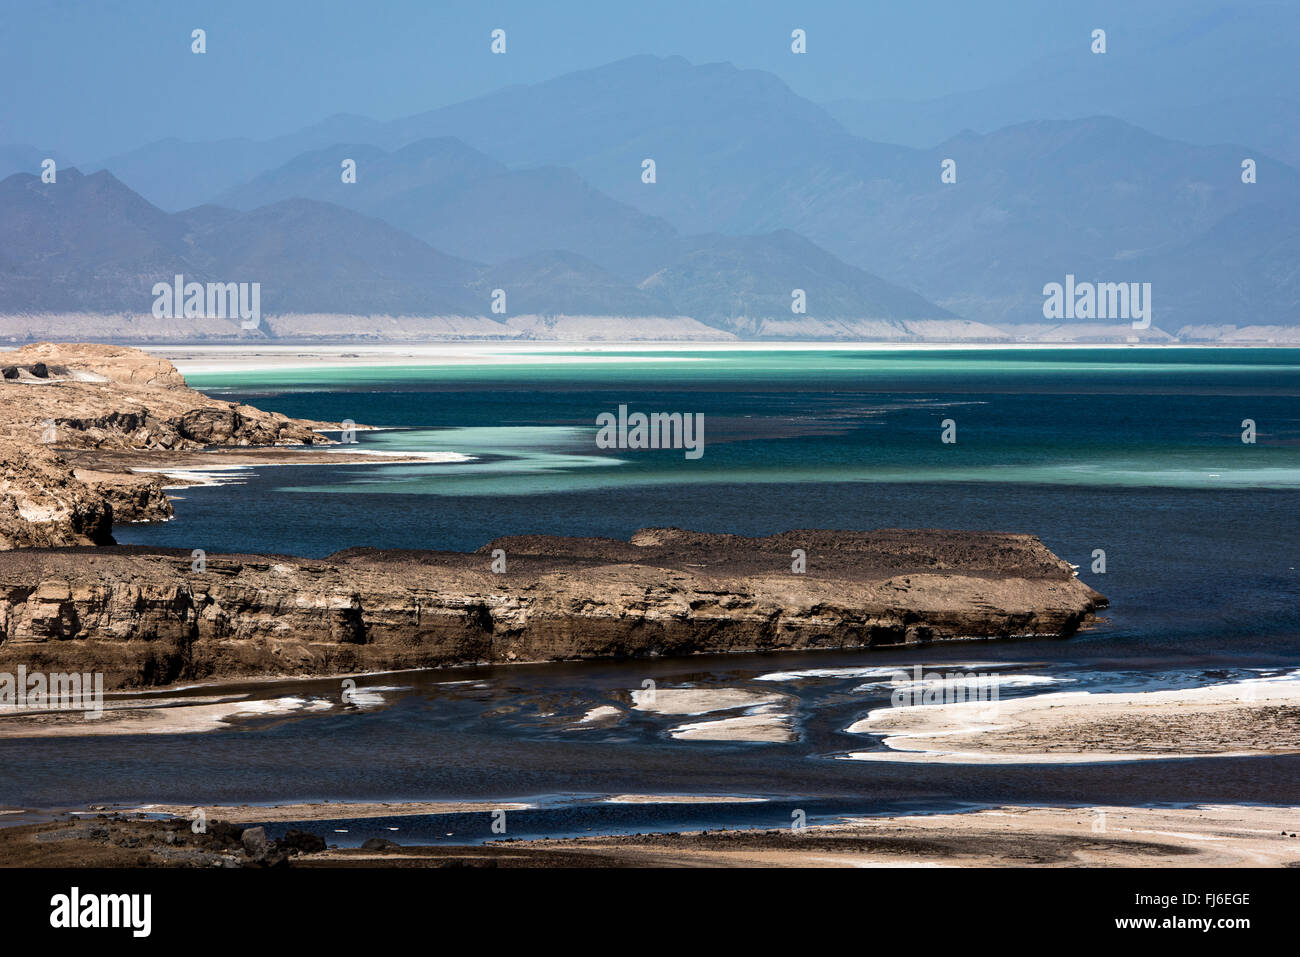 Salt Reserve Lake Assal, Djibouti, Africa - Stock Image